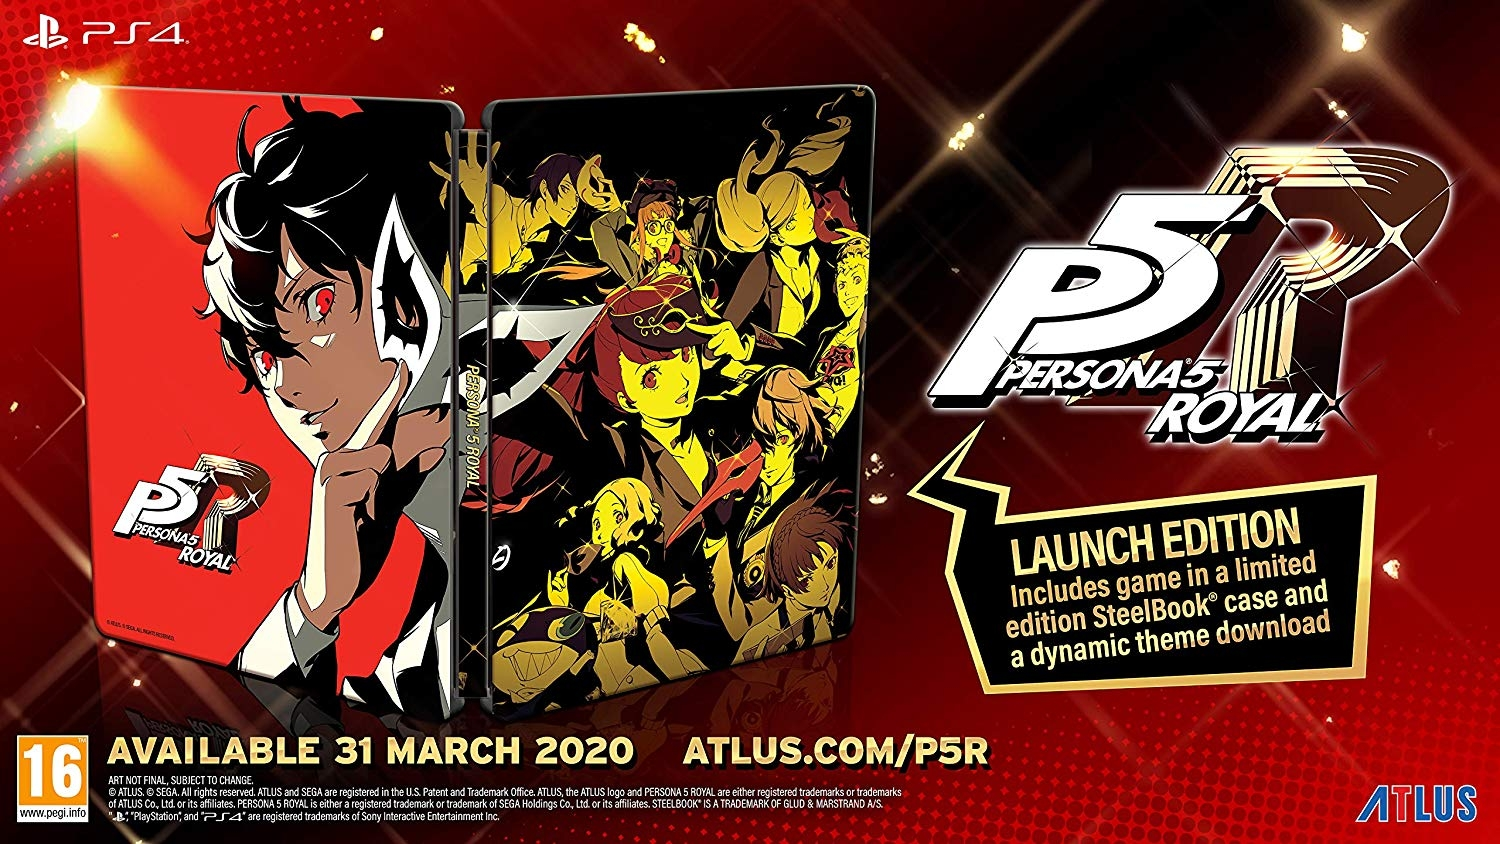 PS4 Persona 5 Royale Launch Edition